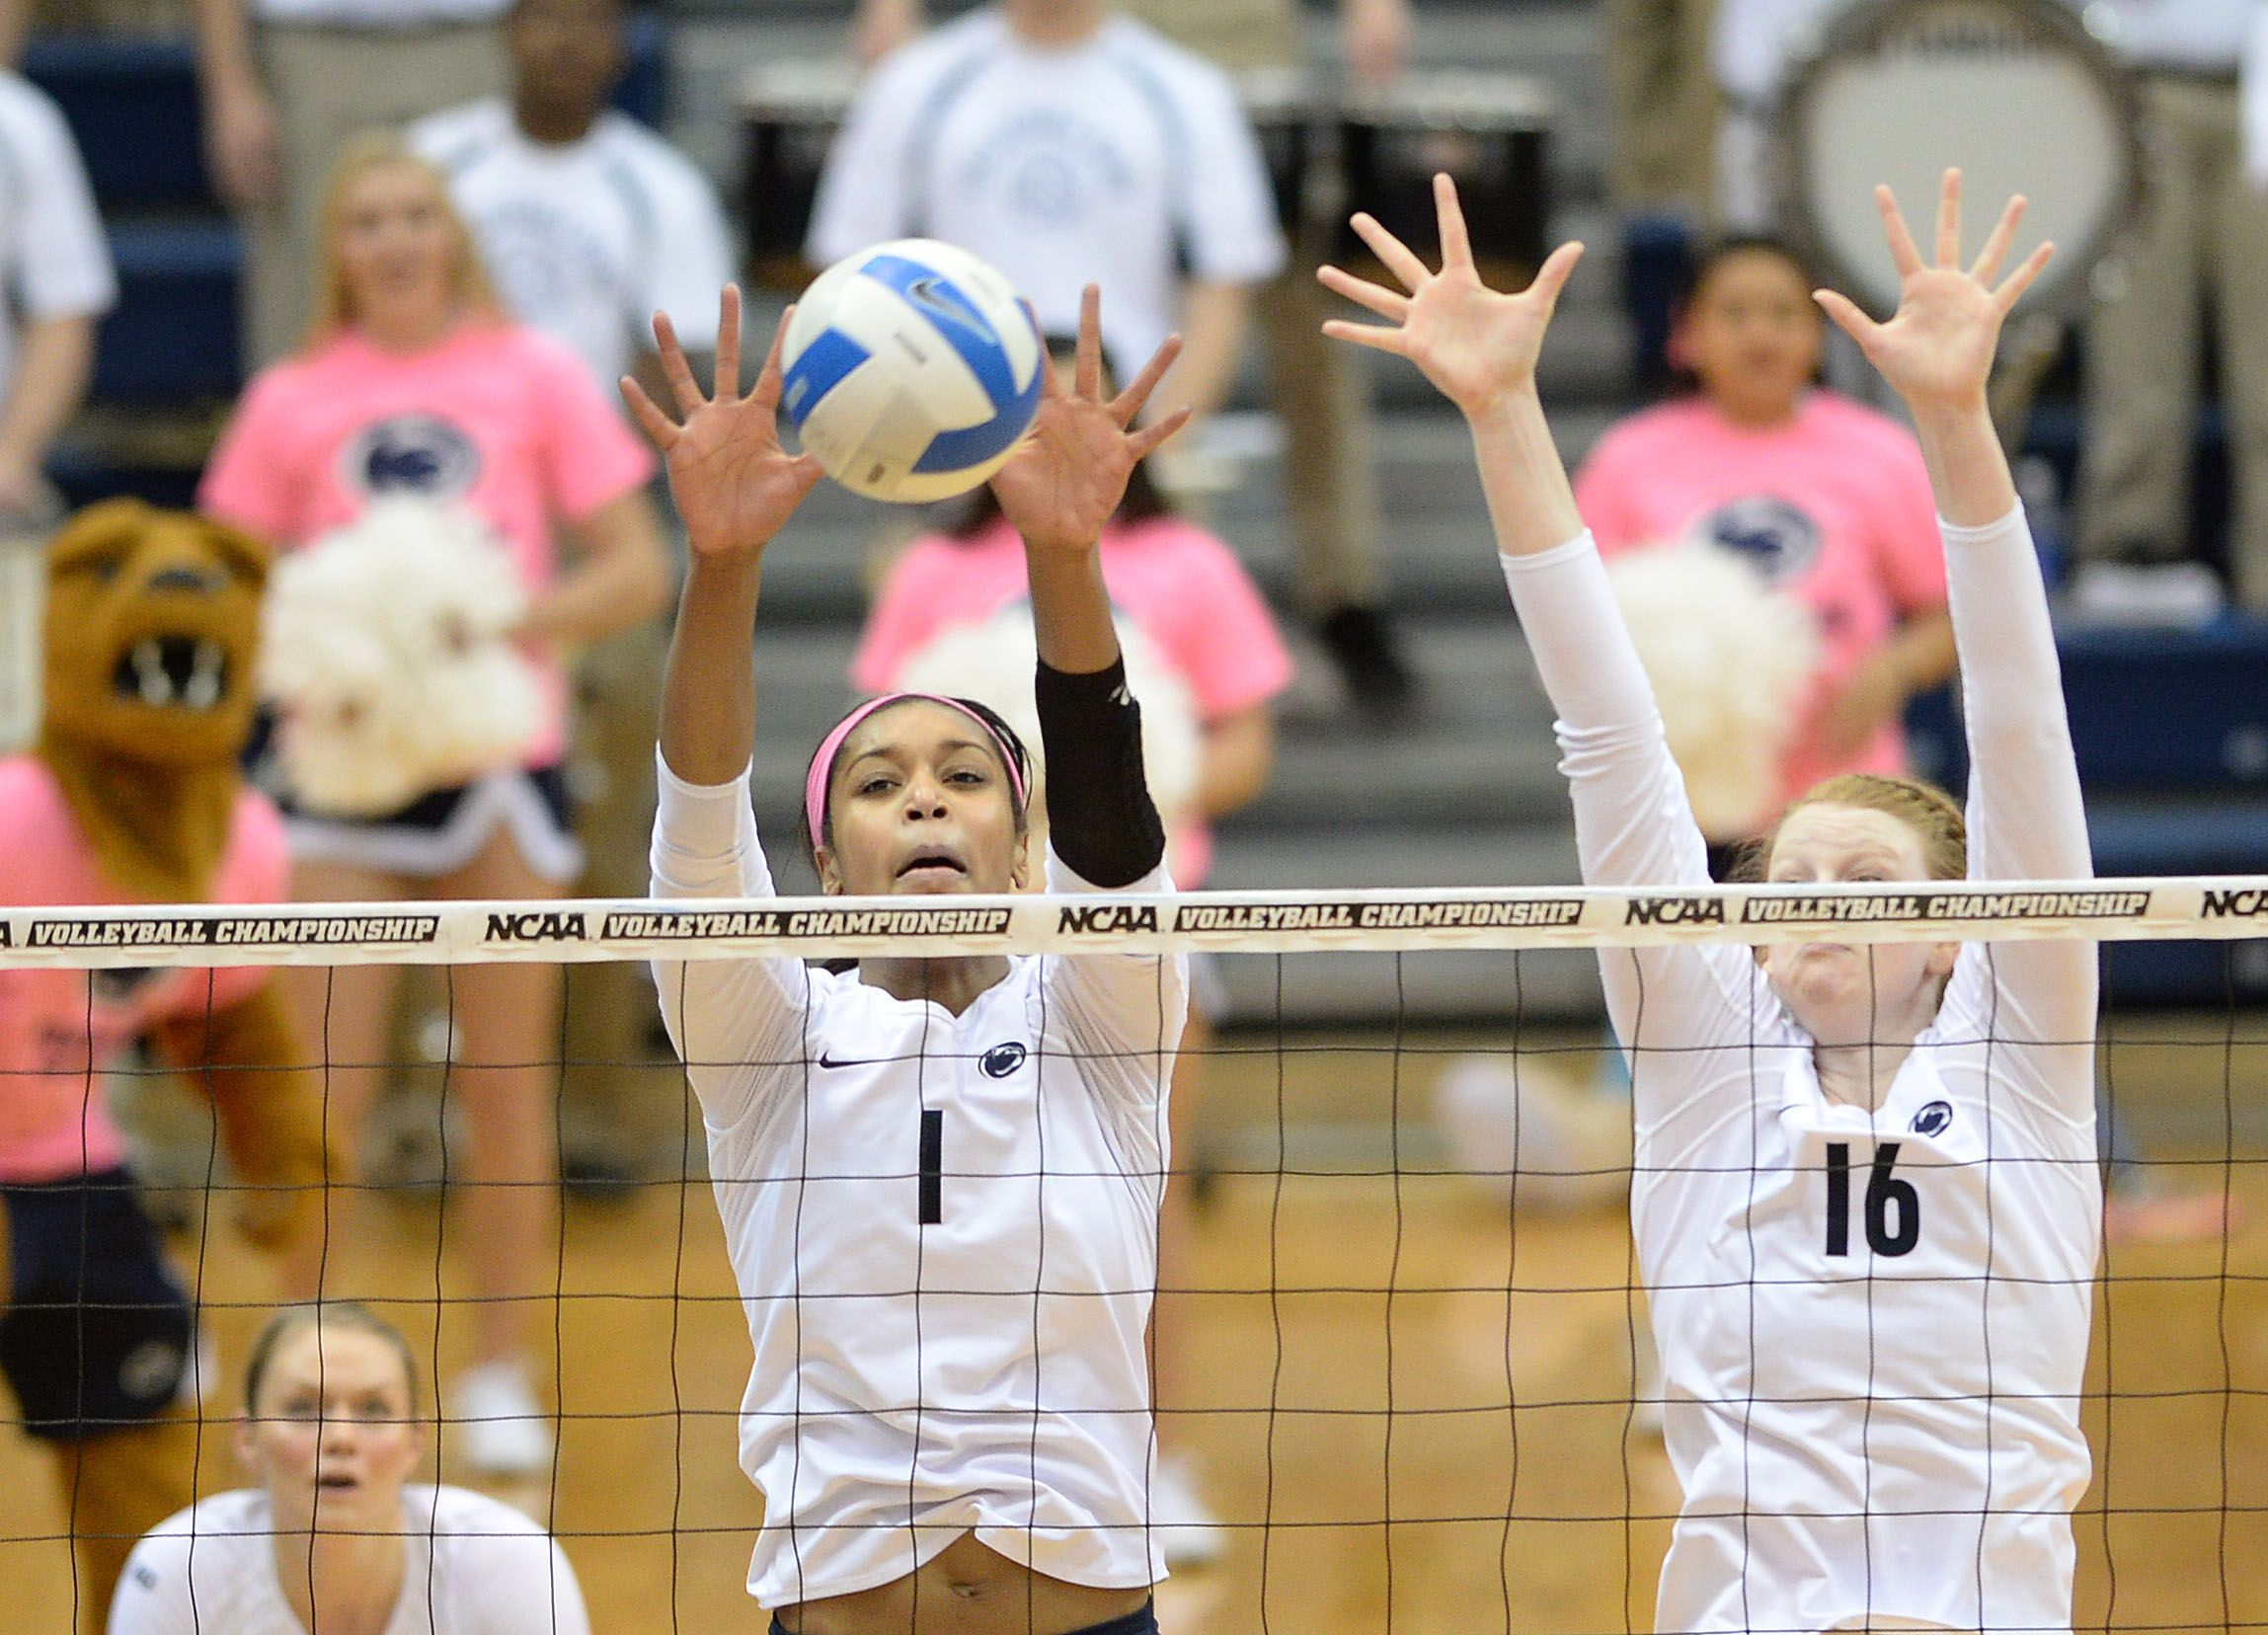 Micha Hancock Booms One Of Her Serves Ariel Scott And Katie Slay Block Shot At Net And Deja Mccle Penn State Volleyball Penn State Athletics Penn State Sports